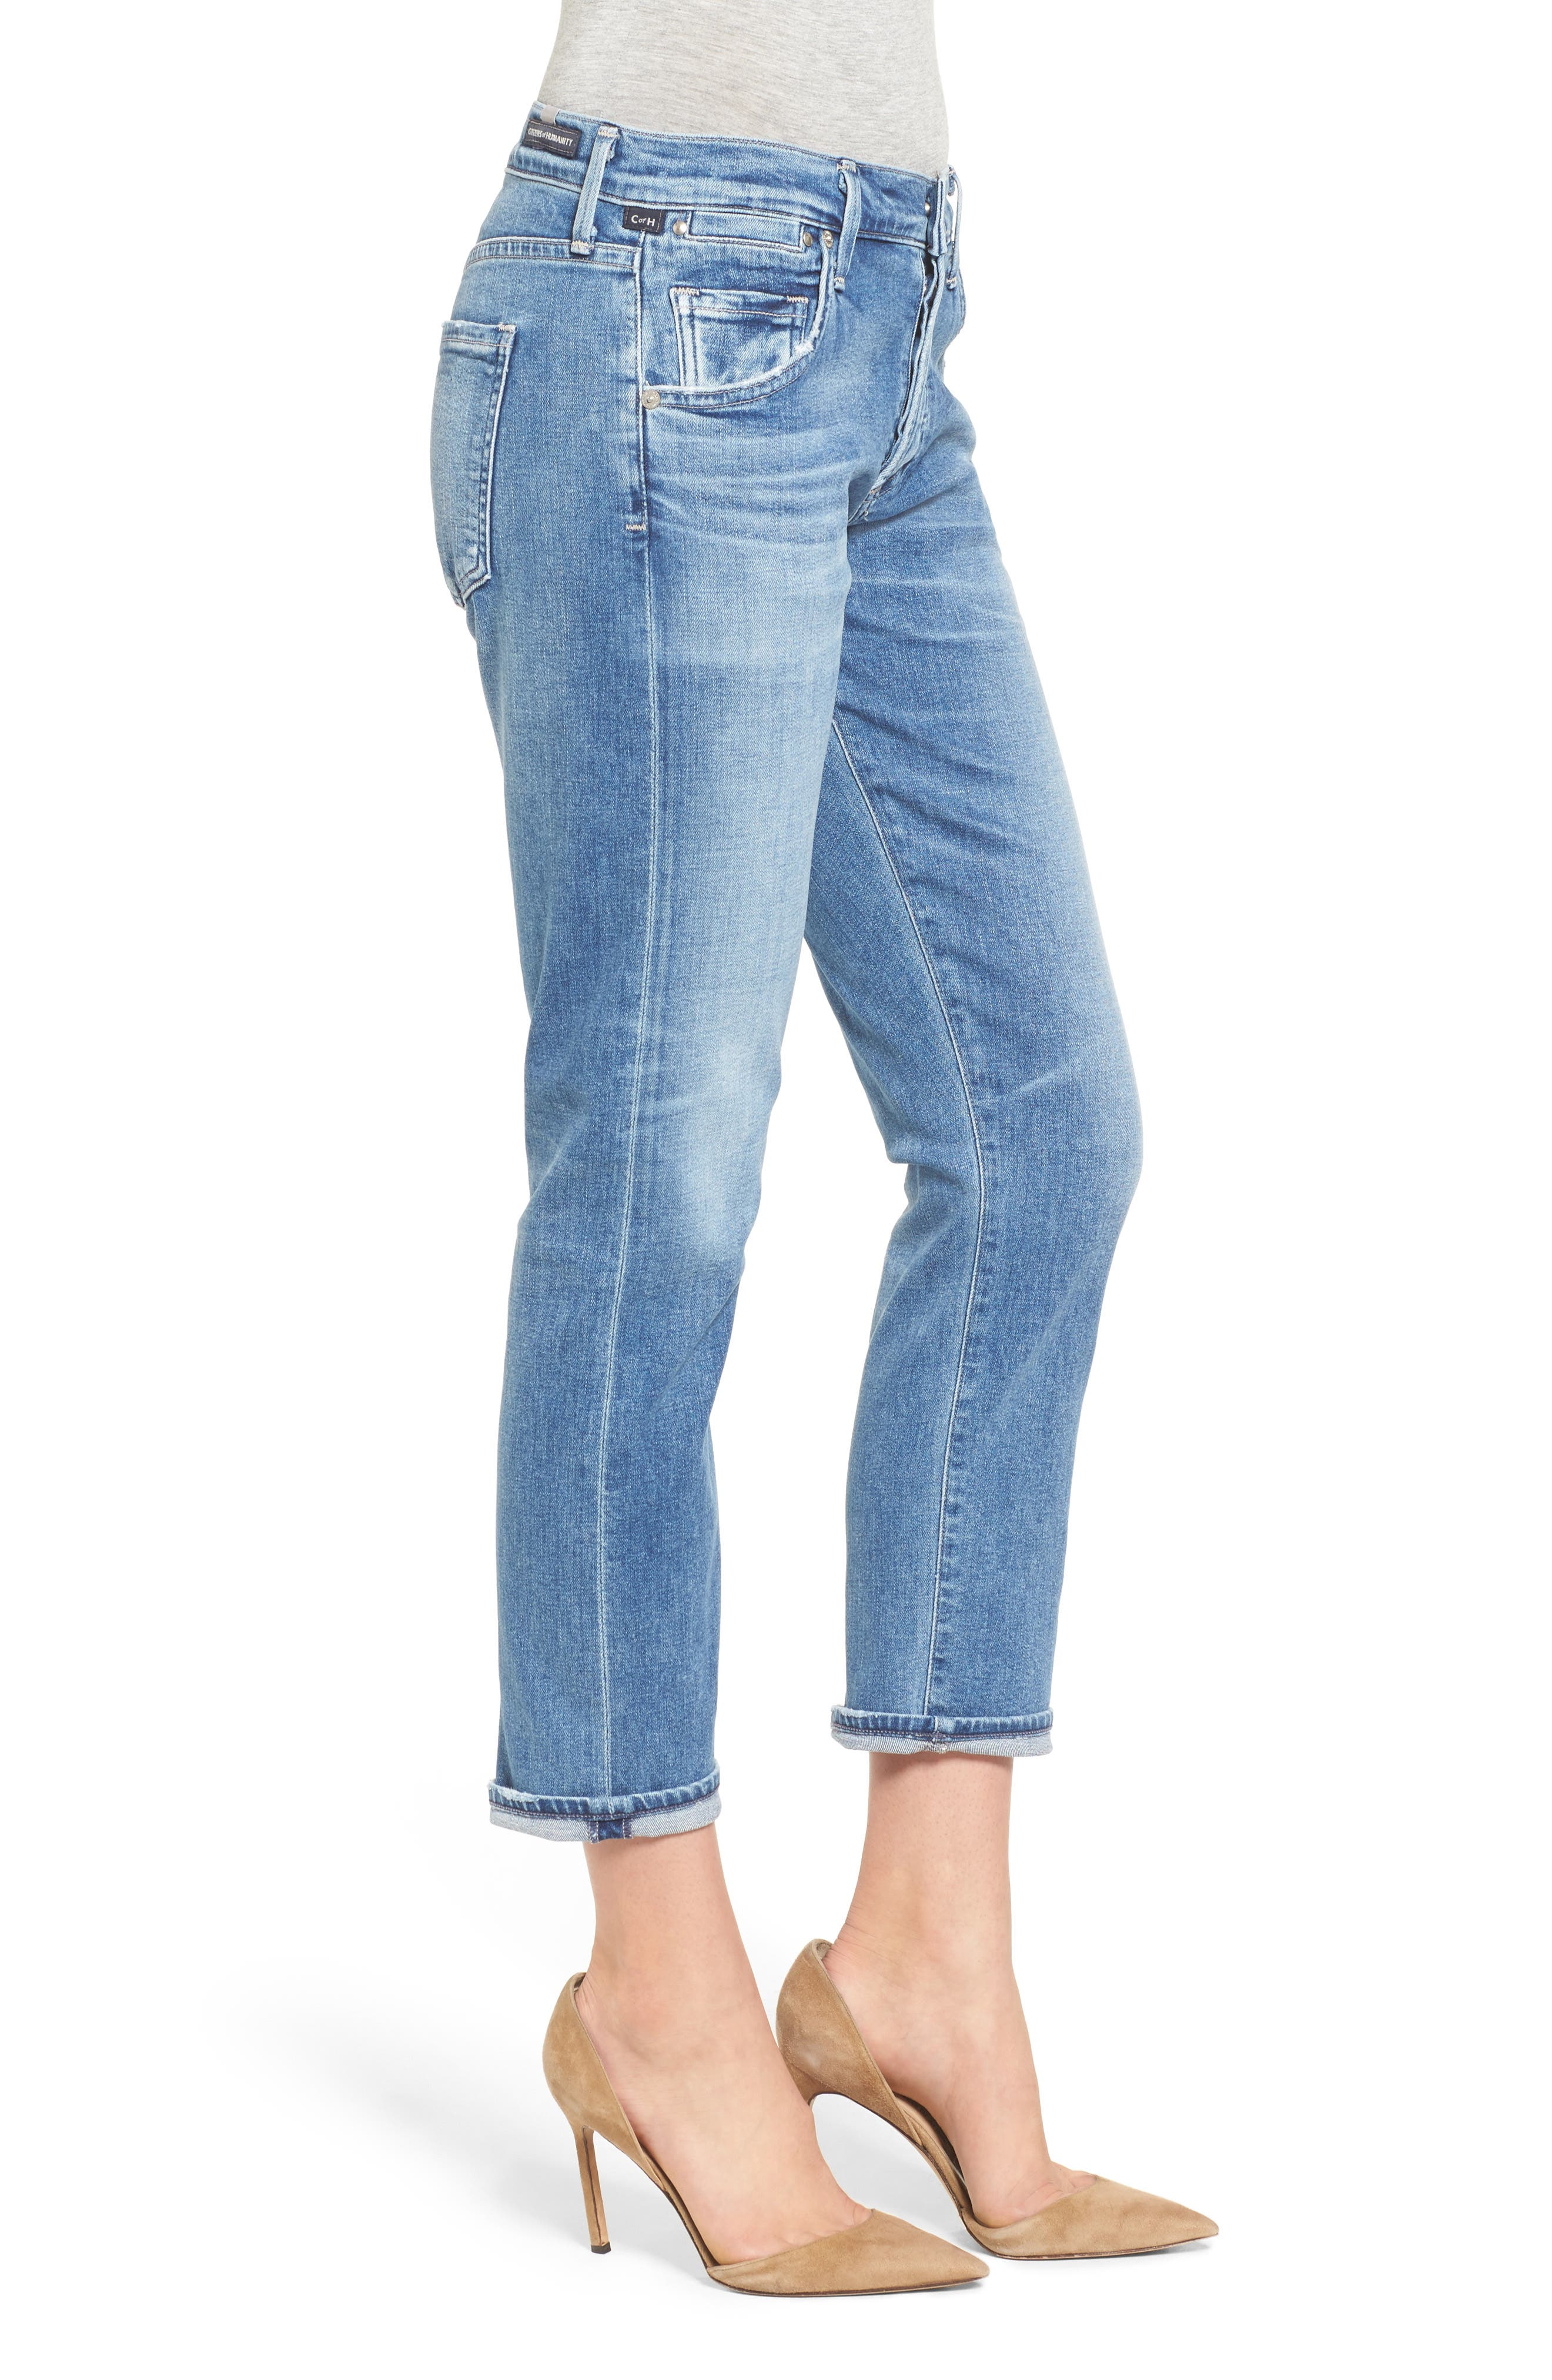 Emerson Slim Boyfriend Jeans,                             Alternate thumbnail 3, color,                             424